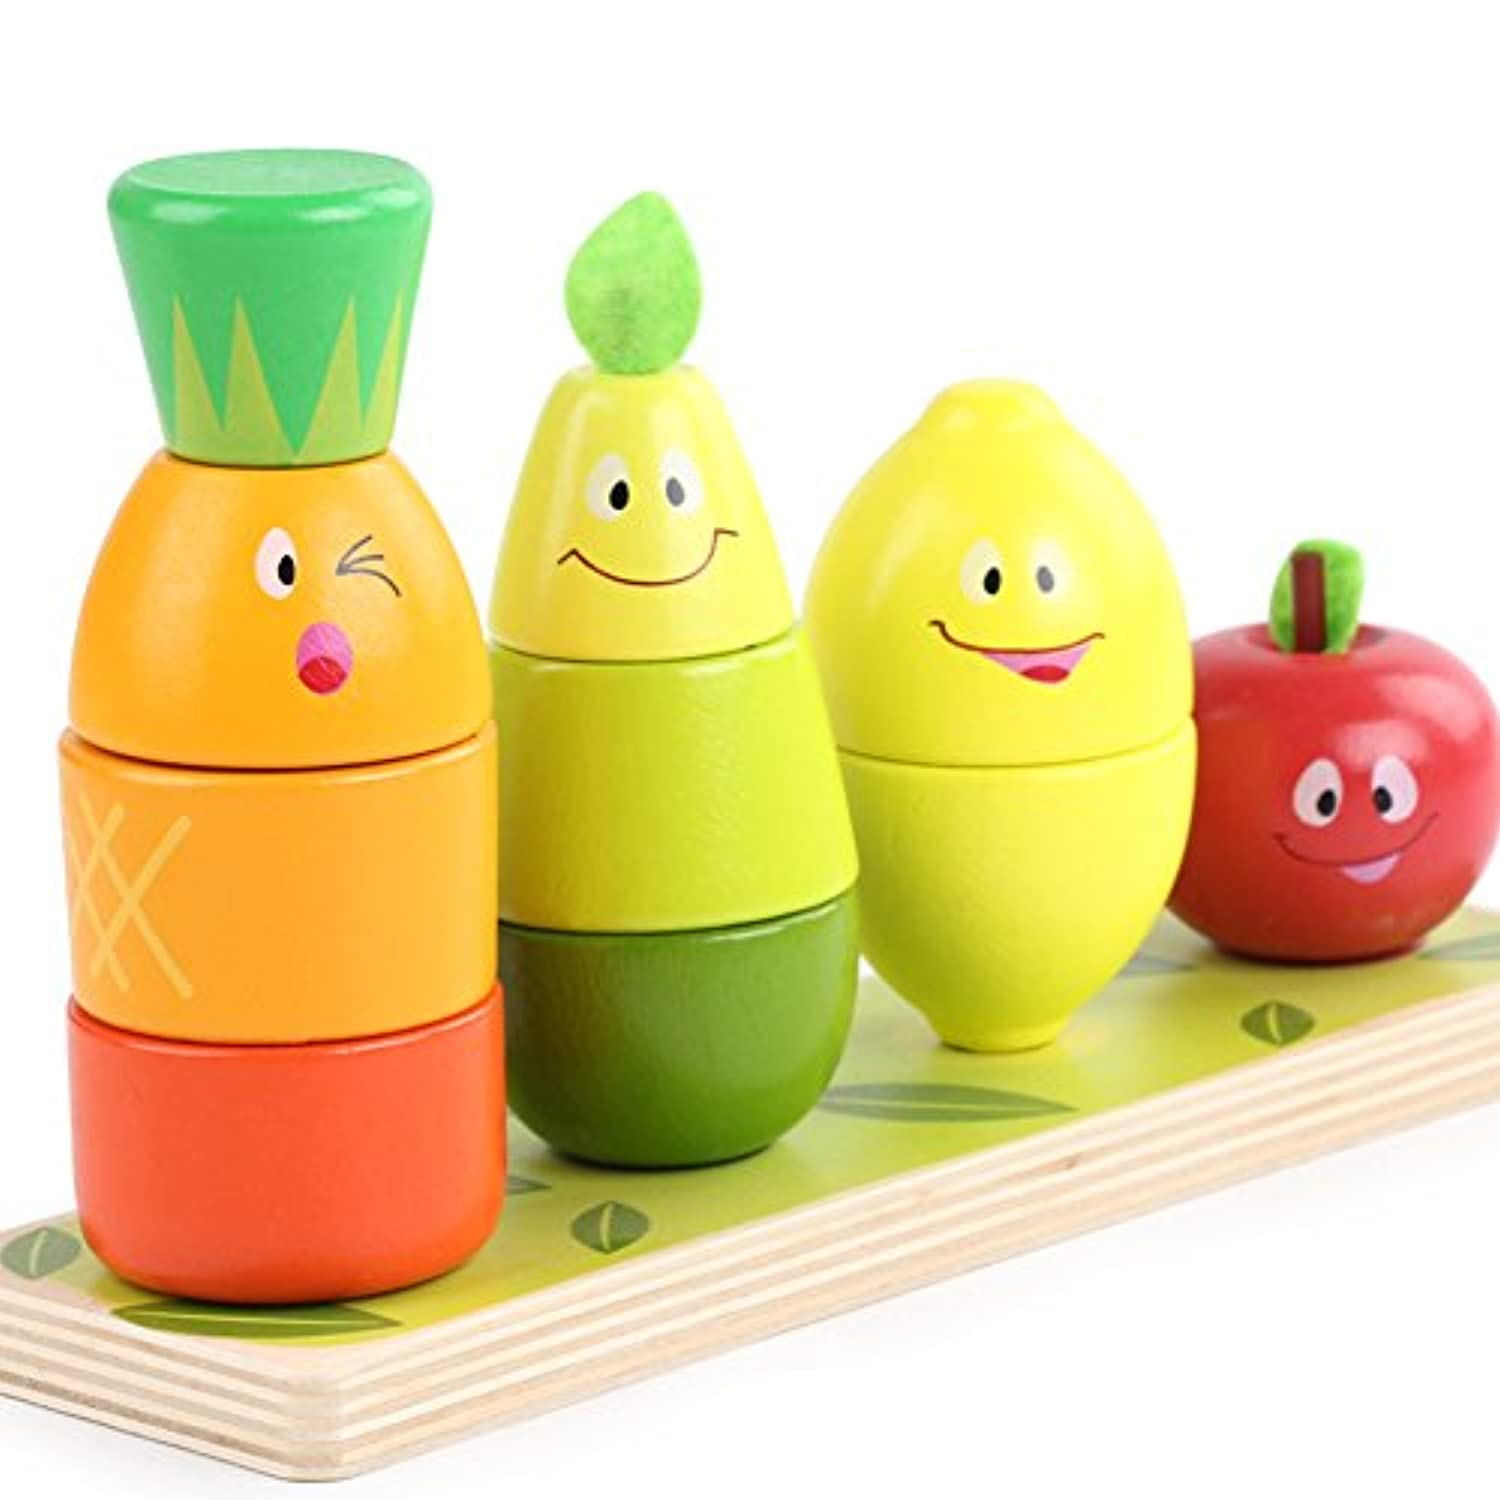 Lewo Wooden Educational Toy Fruit Shape Colour Sorter Stacking Block Chunky Puzzle for Baby Toddlers